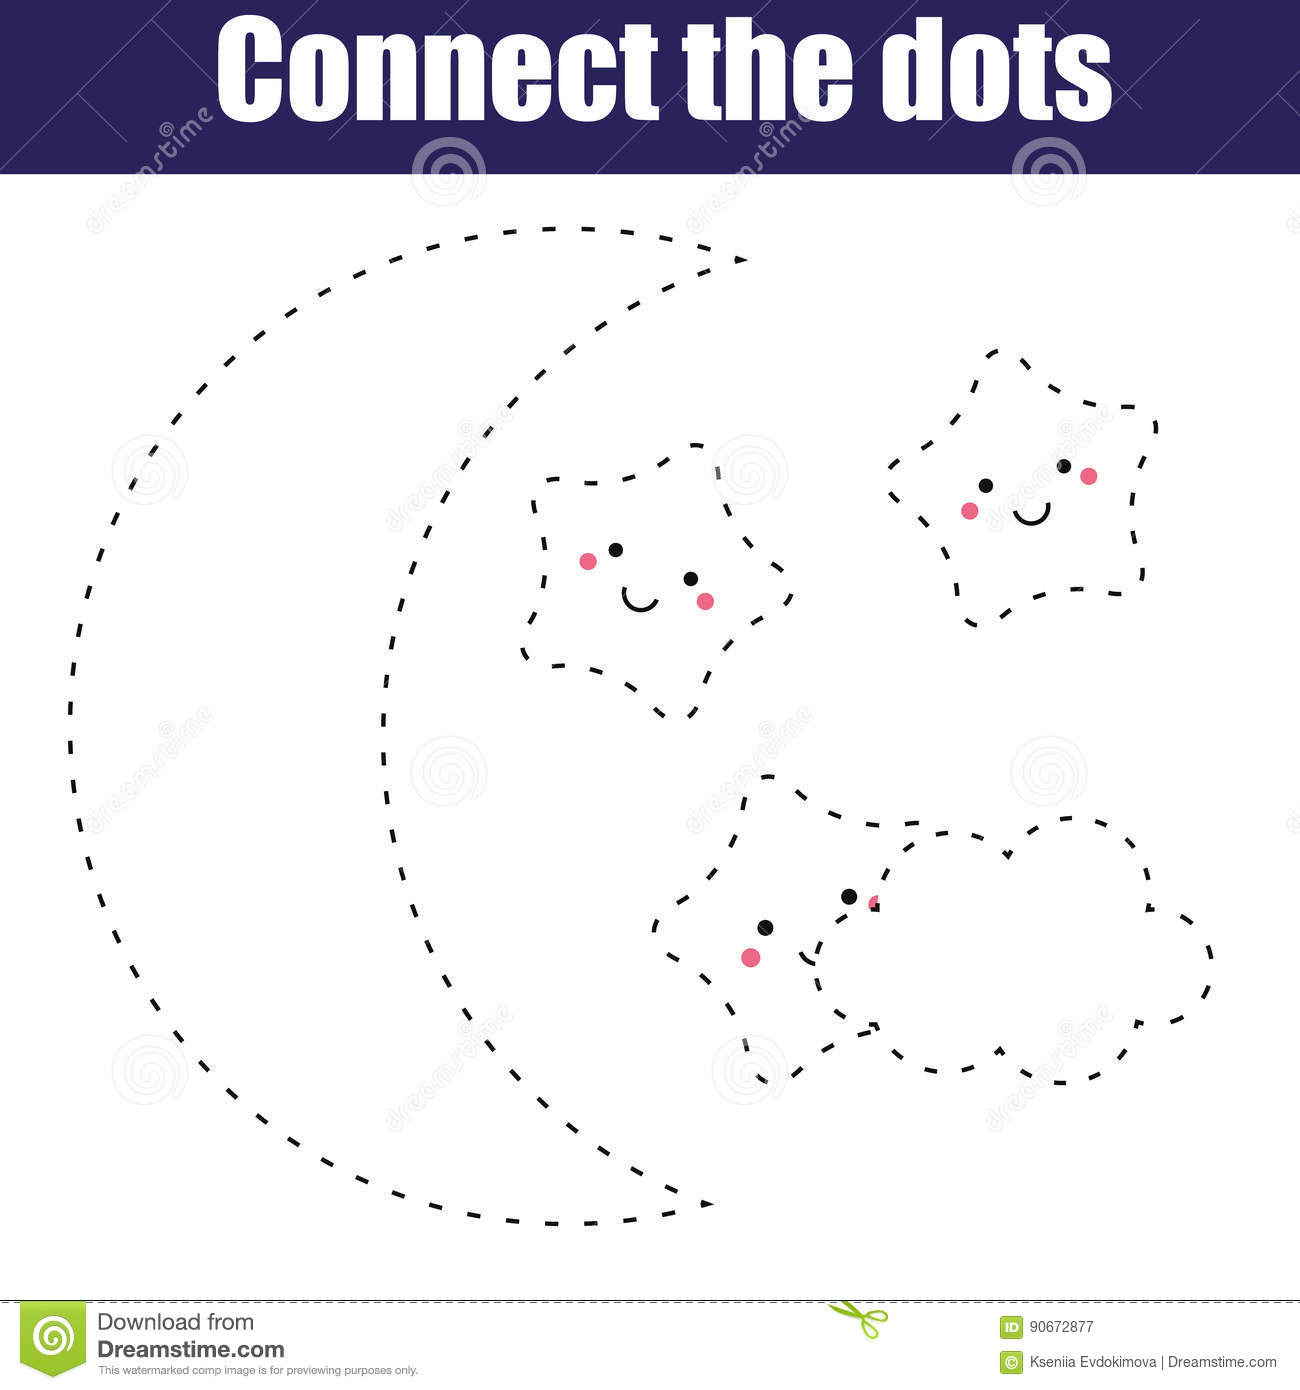 photograph about Connect the Dots Game Printable called Communicate The Dots Small children Insightful Video game. Printable